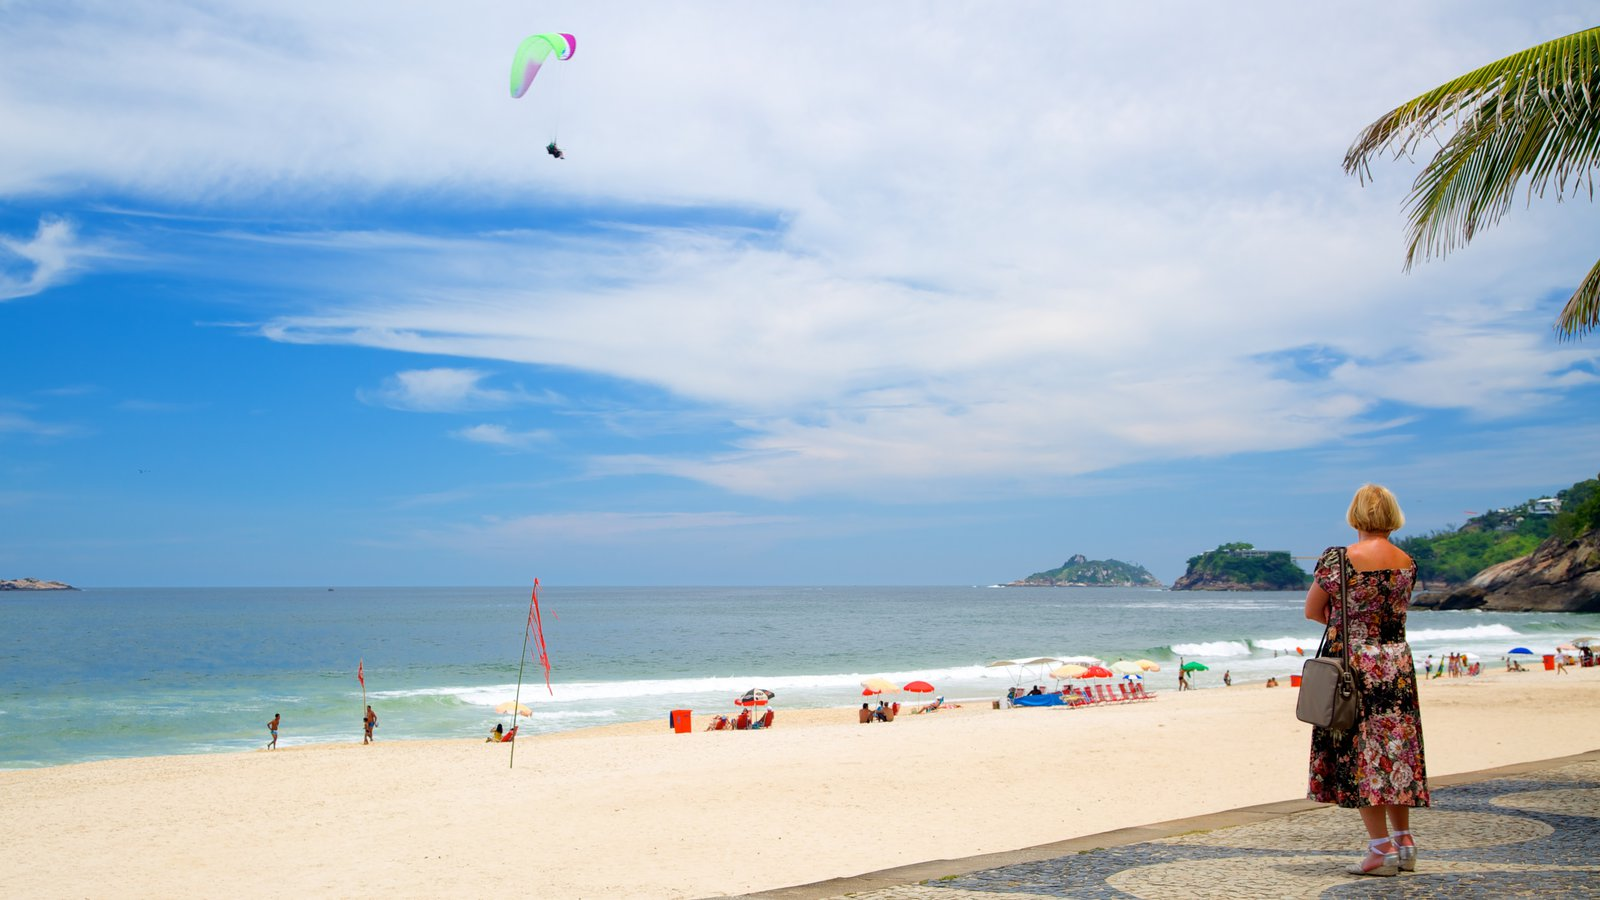 Sao Conrado Beach which includes a sandy beach as well as an individual femail